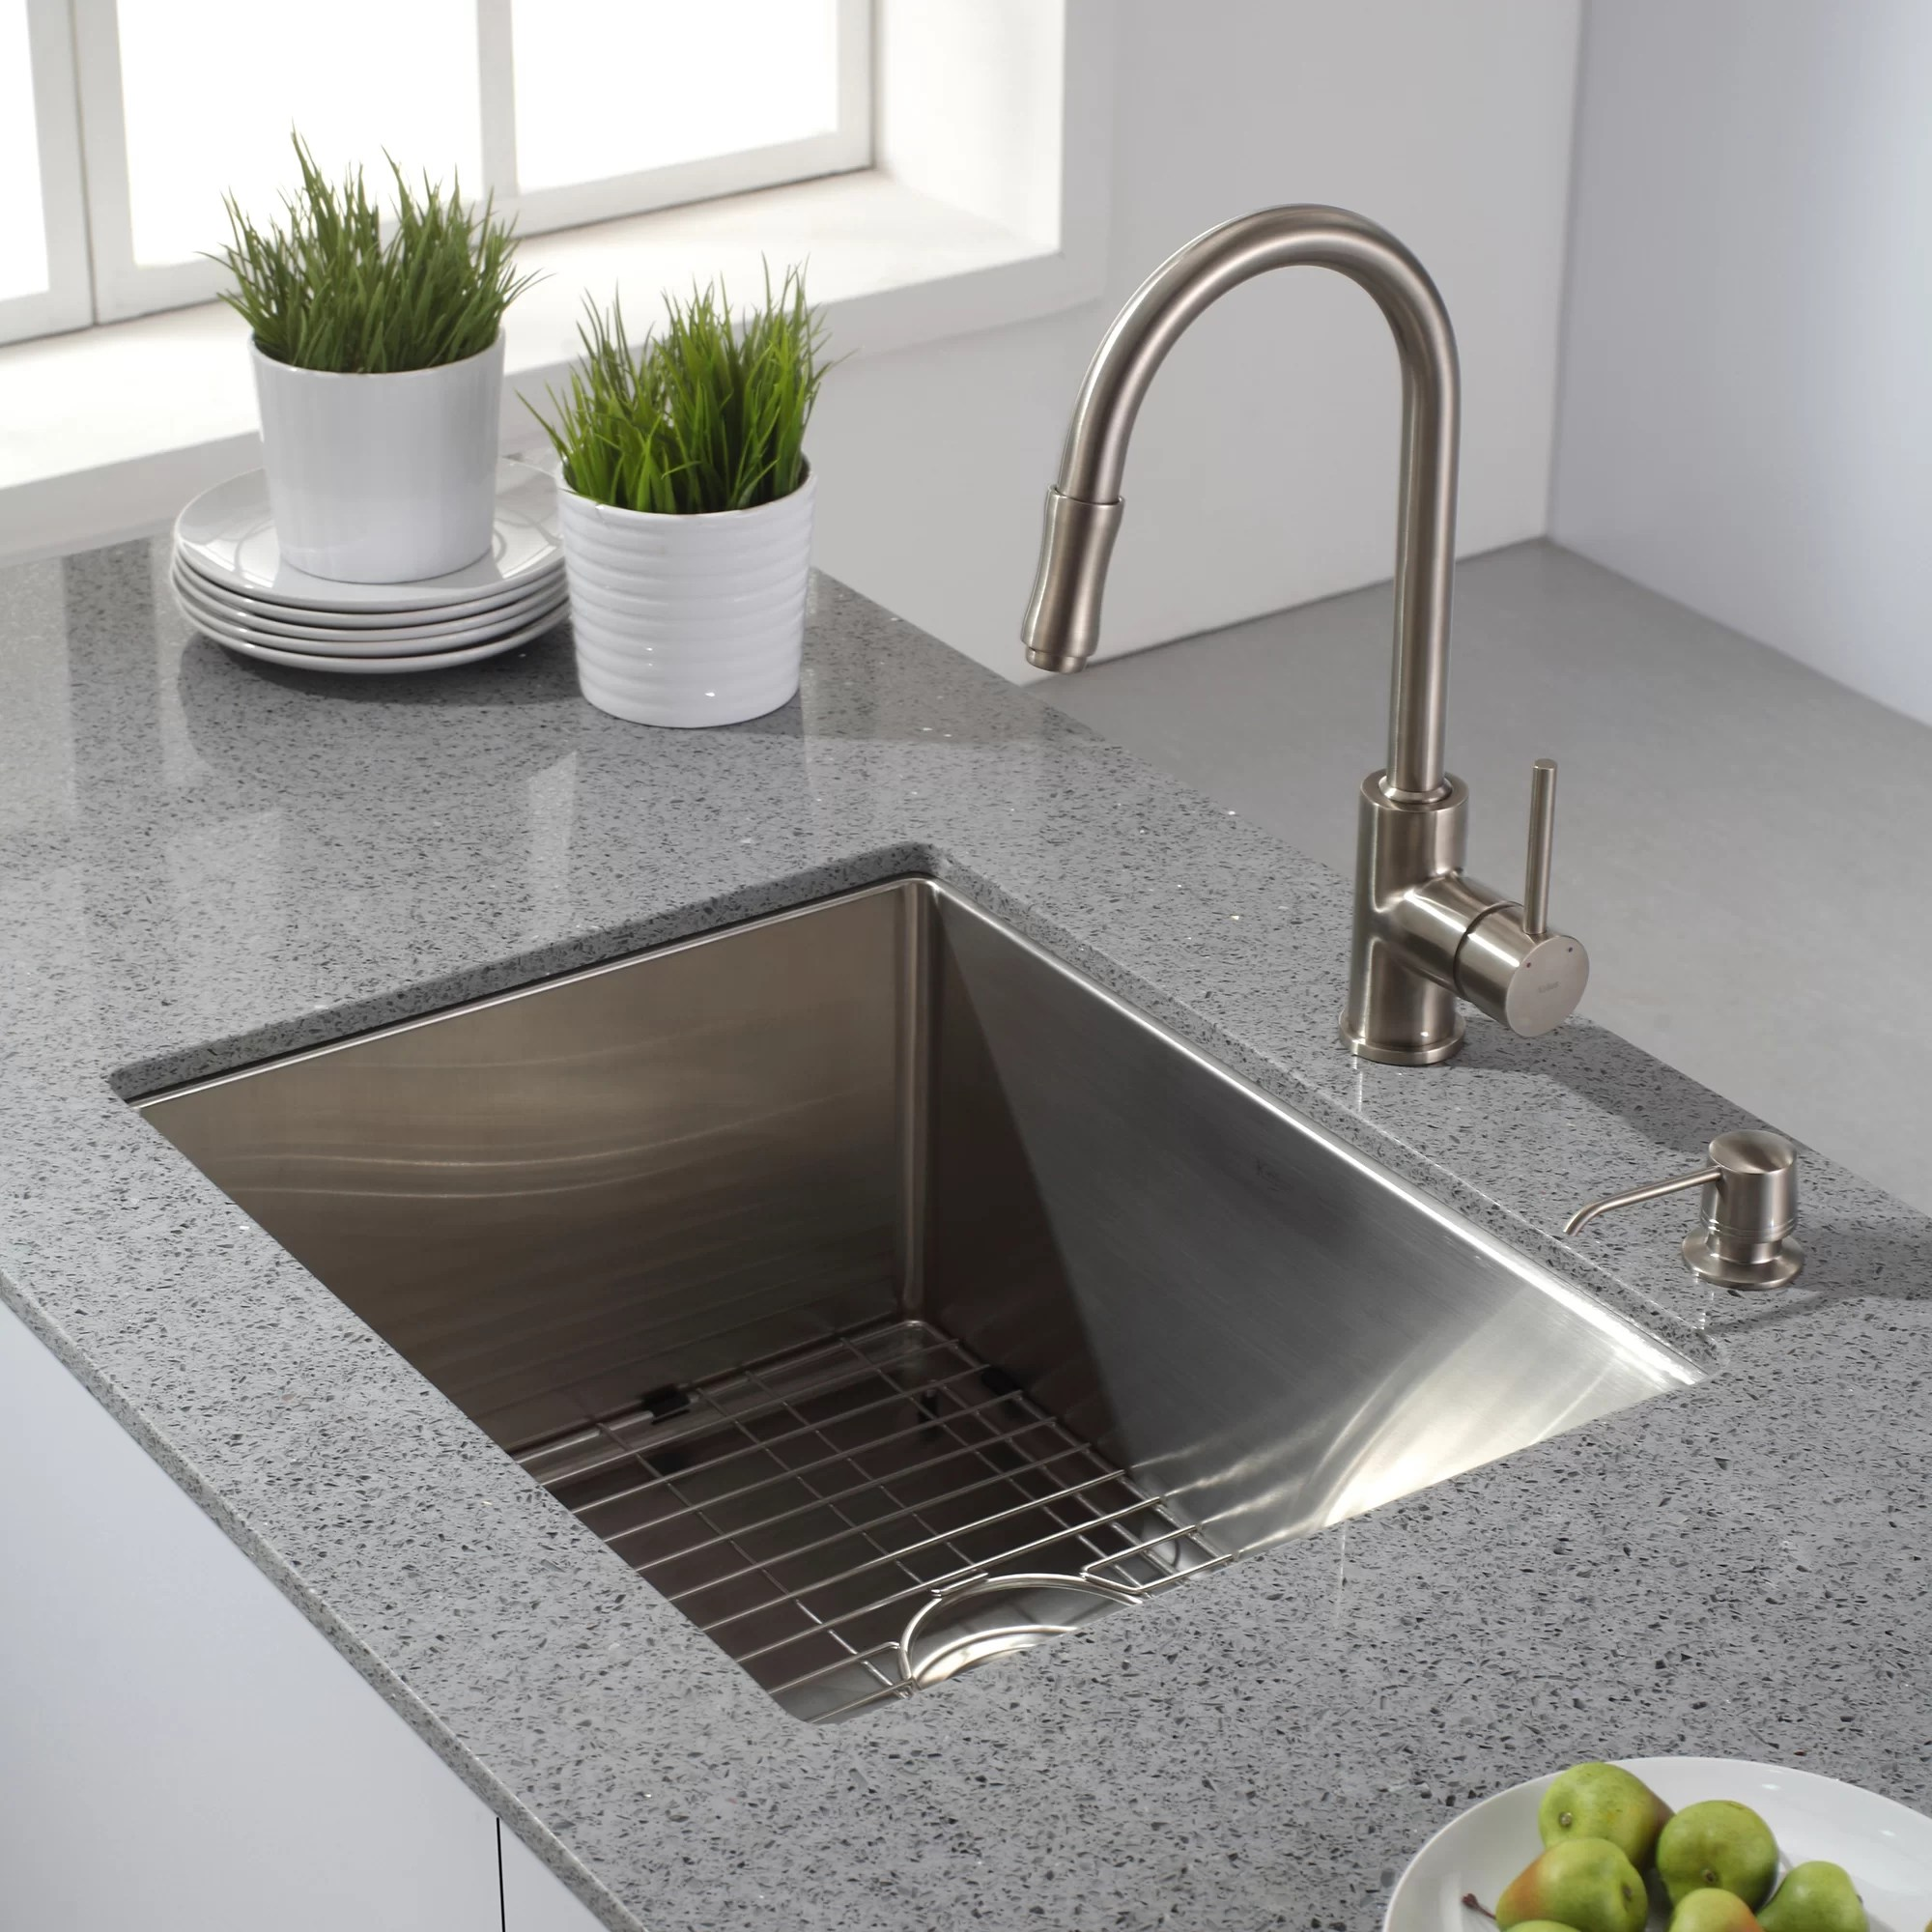 buy undermount kitchen sink milos kraus 23 quot l x 18 w single bowl 16 gauge